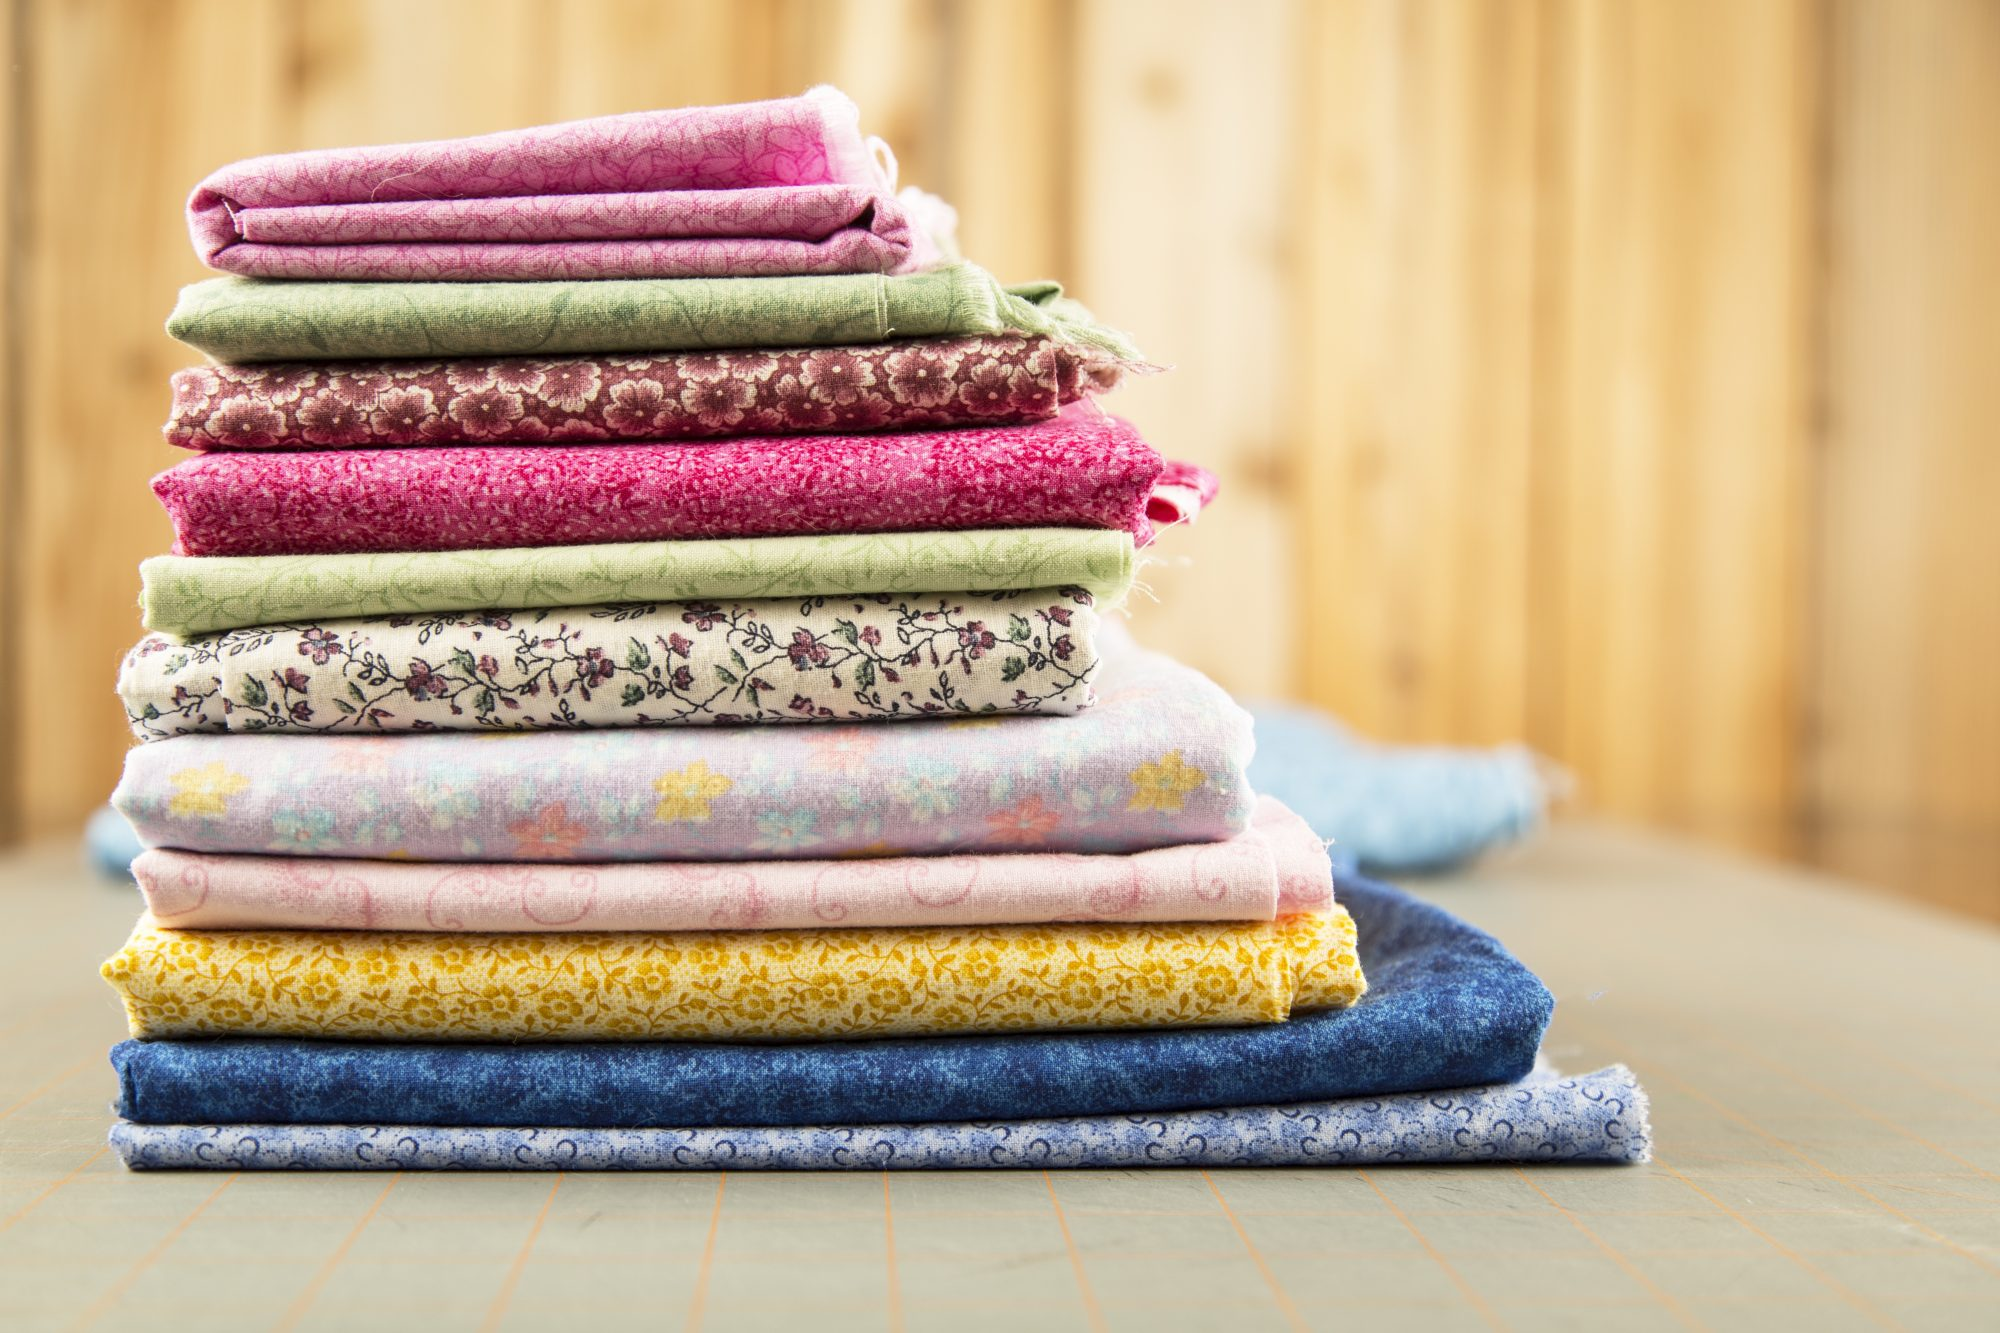 stack of fabric for quilting or sewing